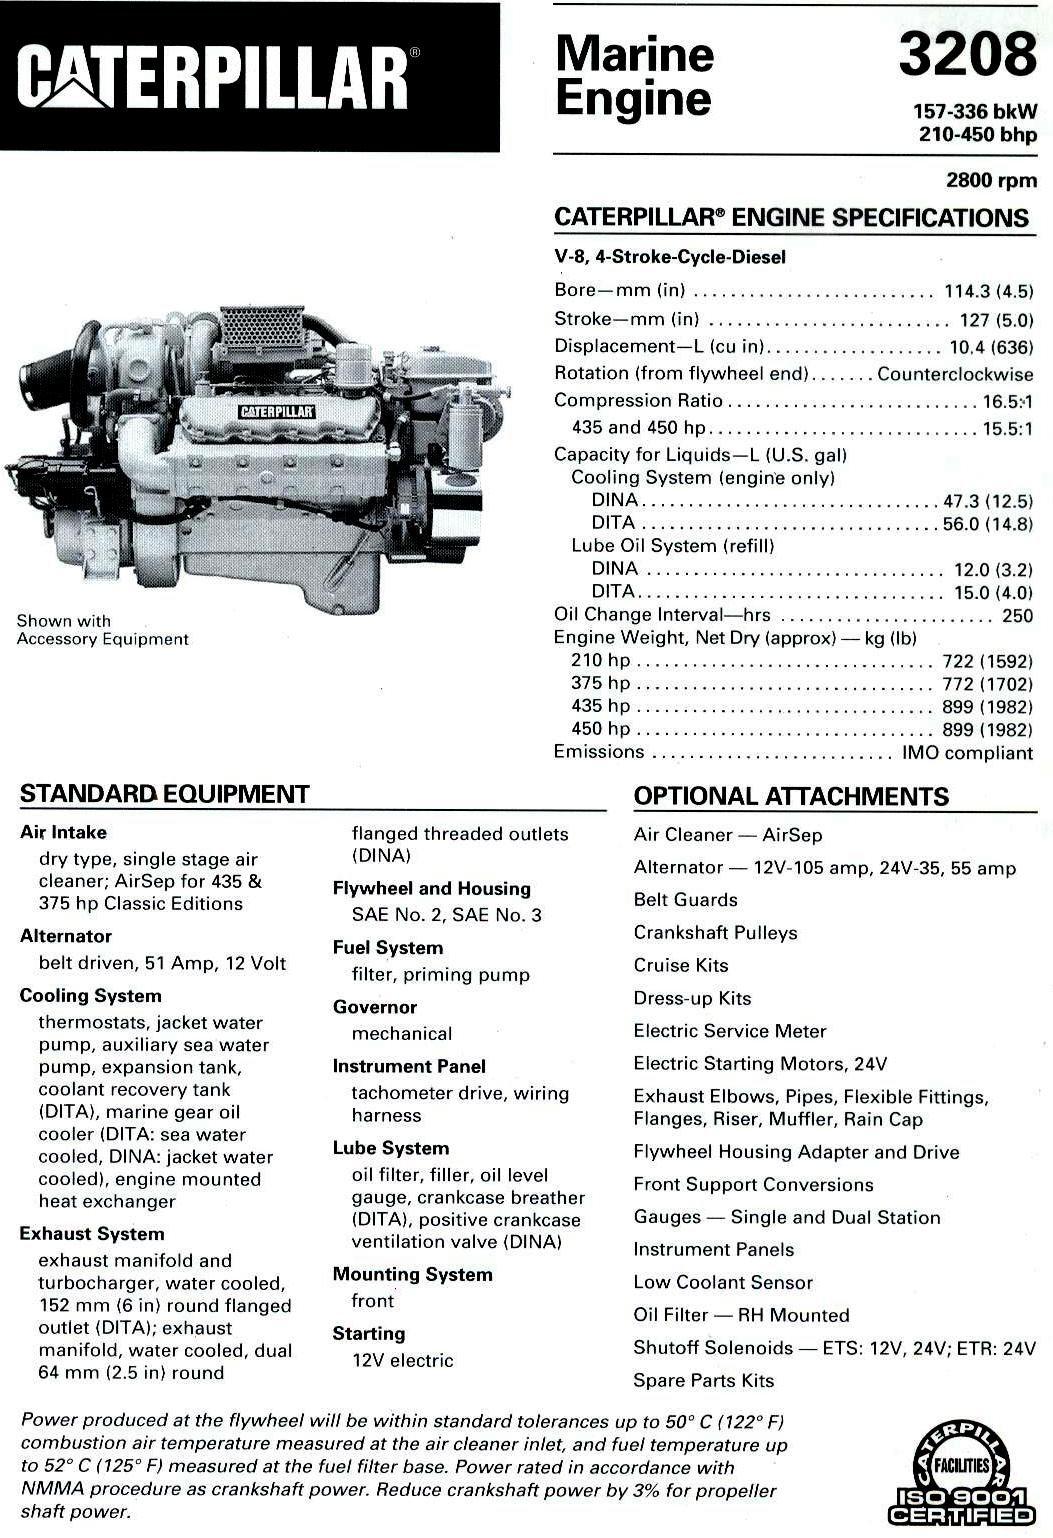 3208 marine engine manual free owners manual u2022 rh wordworksbysea com 3208 Cat Engine Specifications cat 3208 diesel engine parts manual